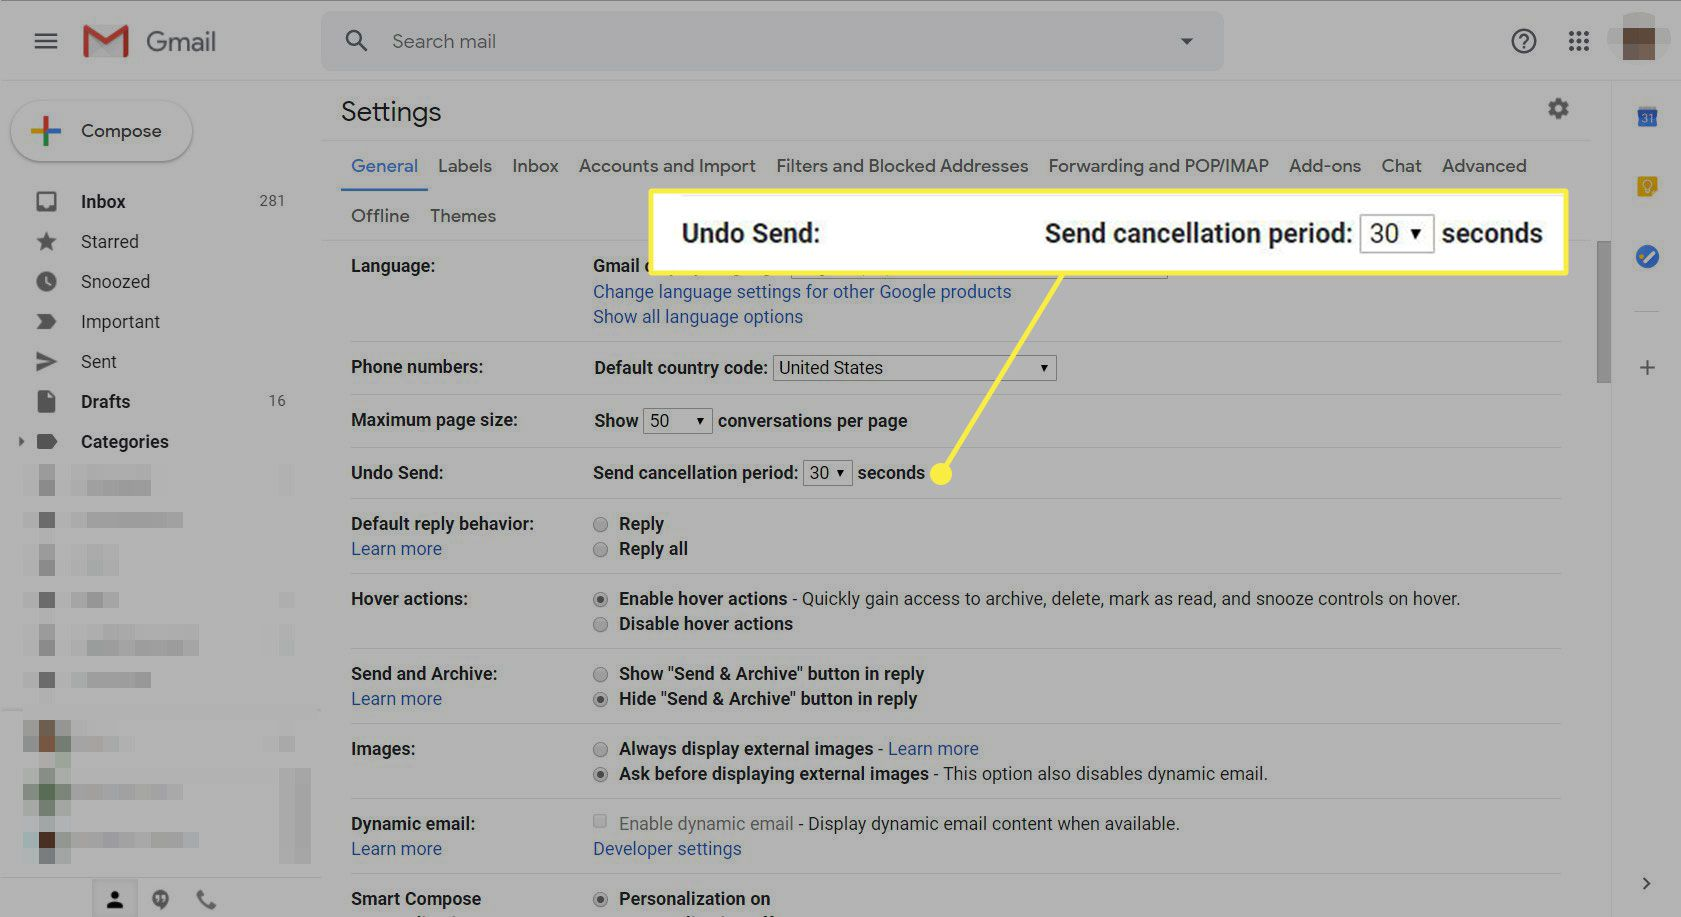 A screenshot of Gmail settings with the Undo Send options highlighted